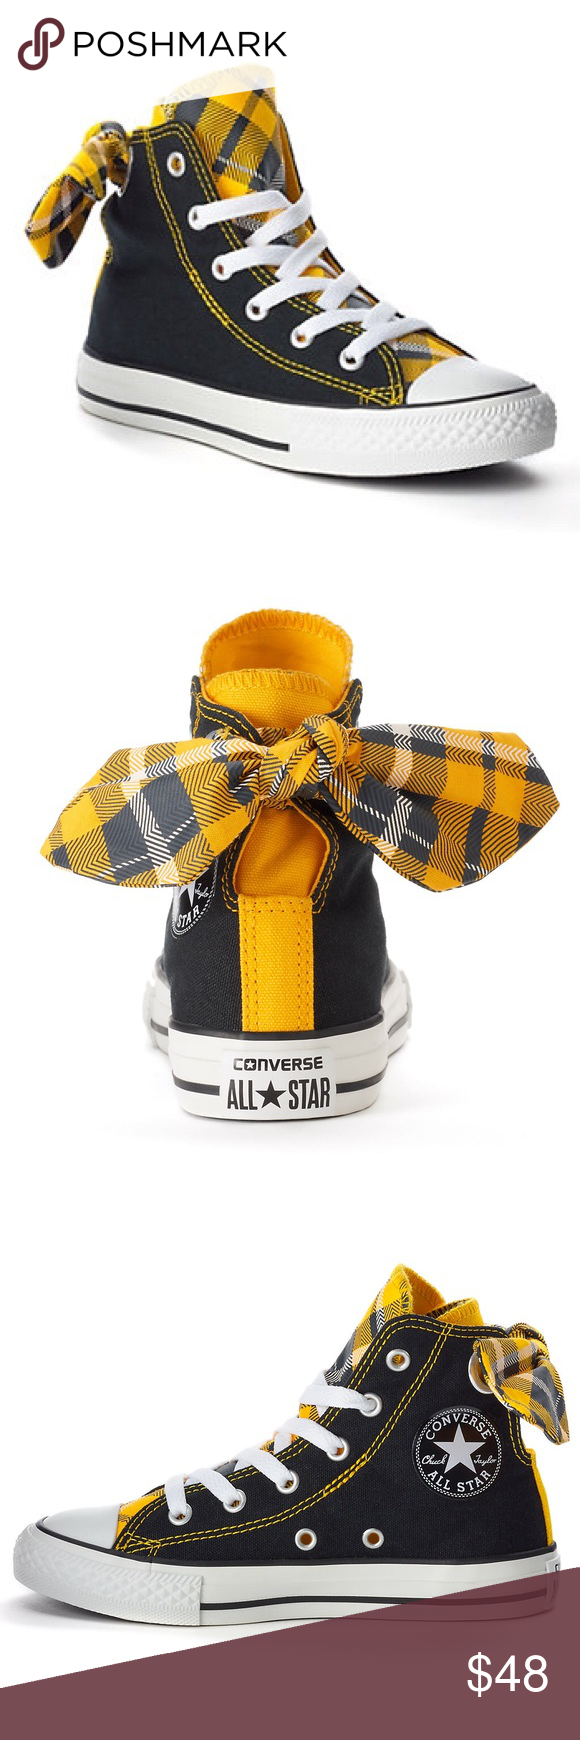 ab43ea58ff5 Beautiful Authentic Black and yellow converse